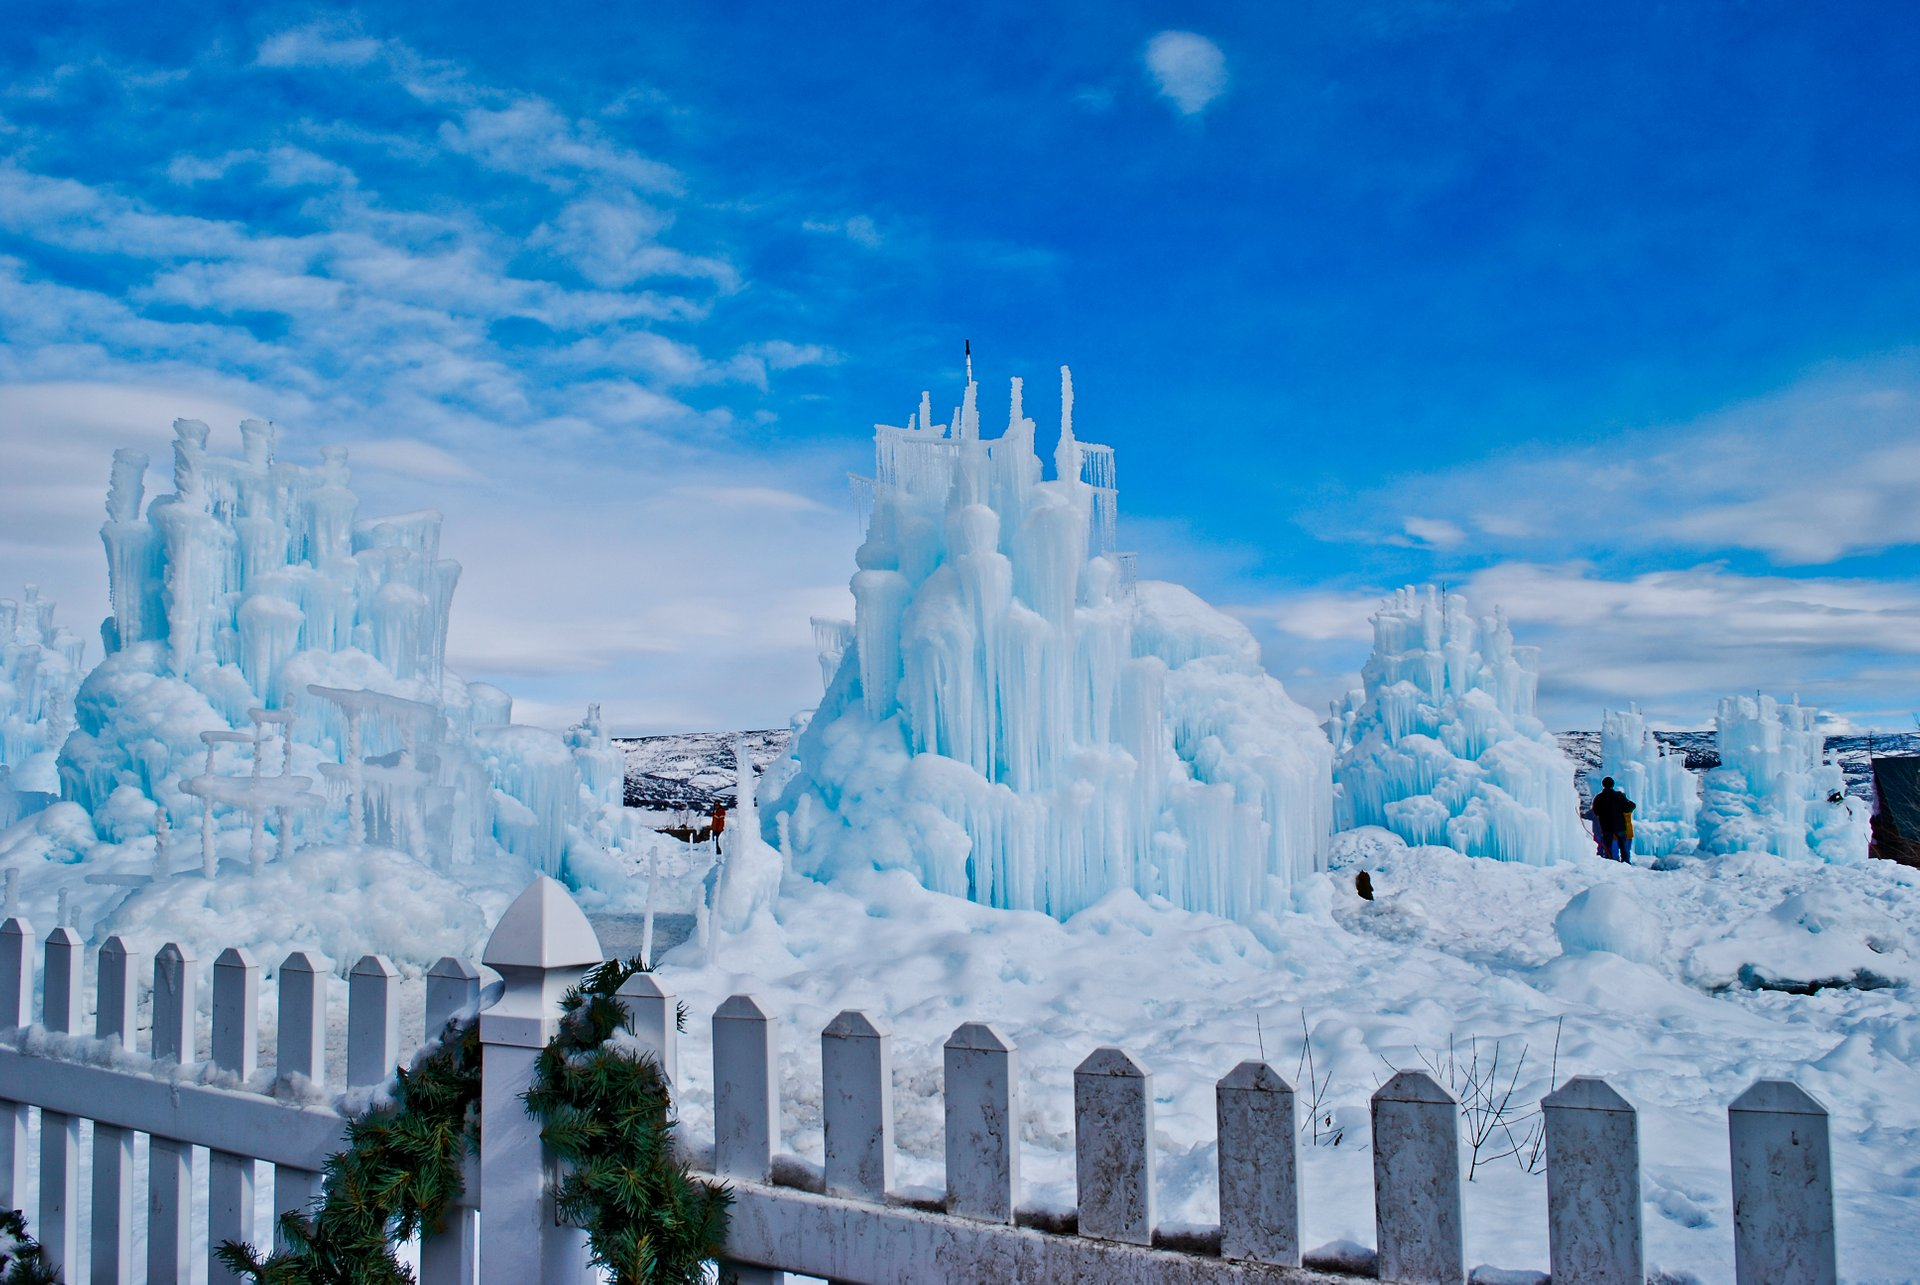 Ice Castle in Midway, Utah 2019